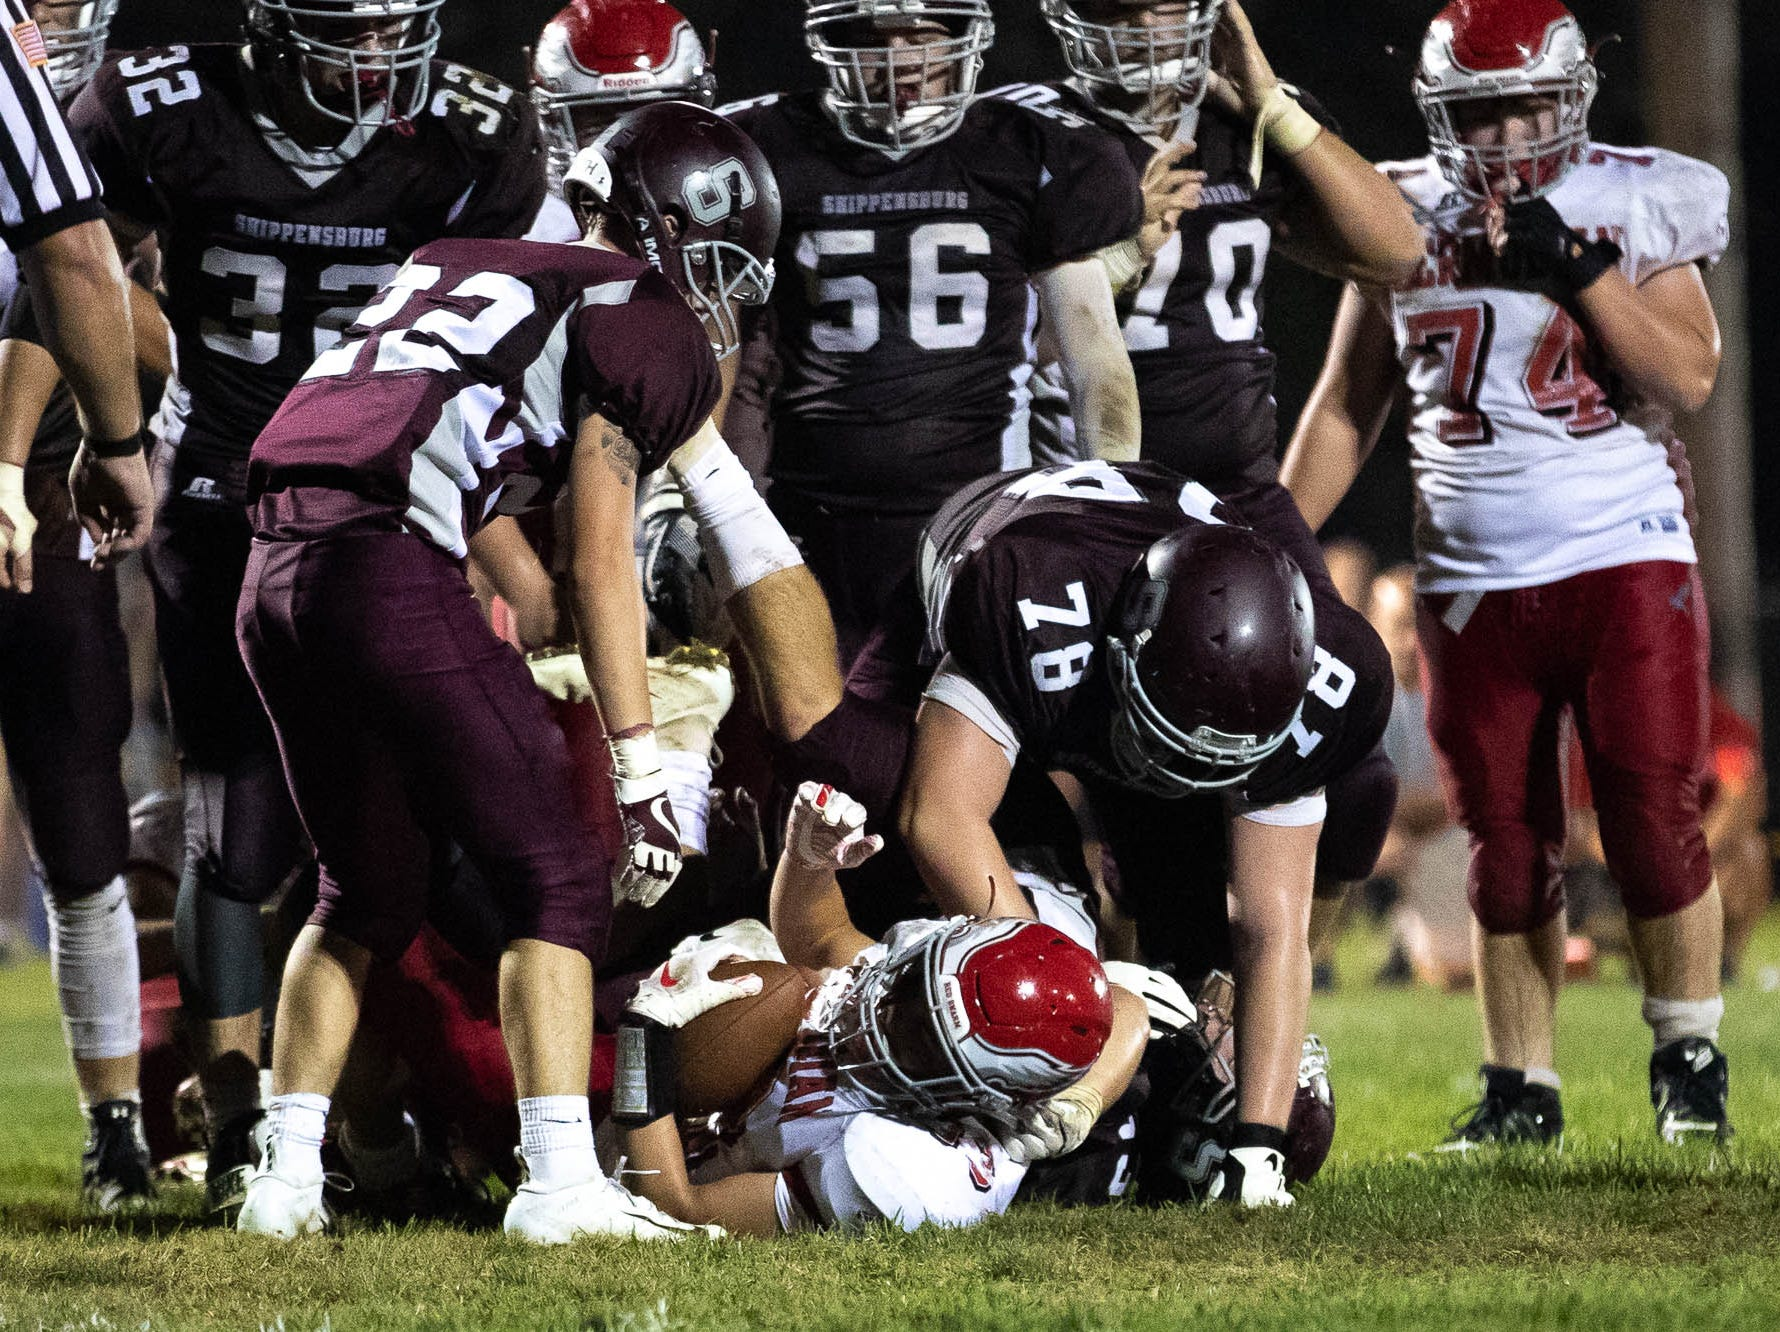 Bermudian Springs' Trace Grim (33) is piled on by the Shippensburg defense during a football game between Shippensburg and Bermudian Springs, Friday, Sept. 7, 2018, at Shippensburg High School. The Shippensburg Greyhounds defeated the Bermudian Springs Eagles 31-17.